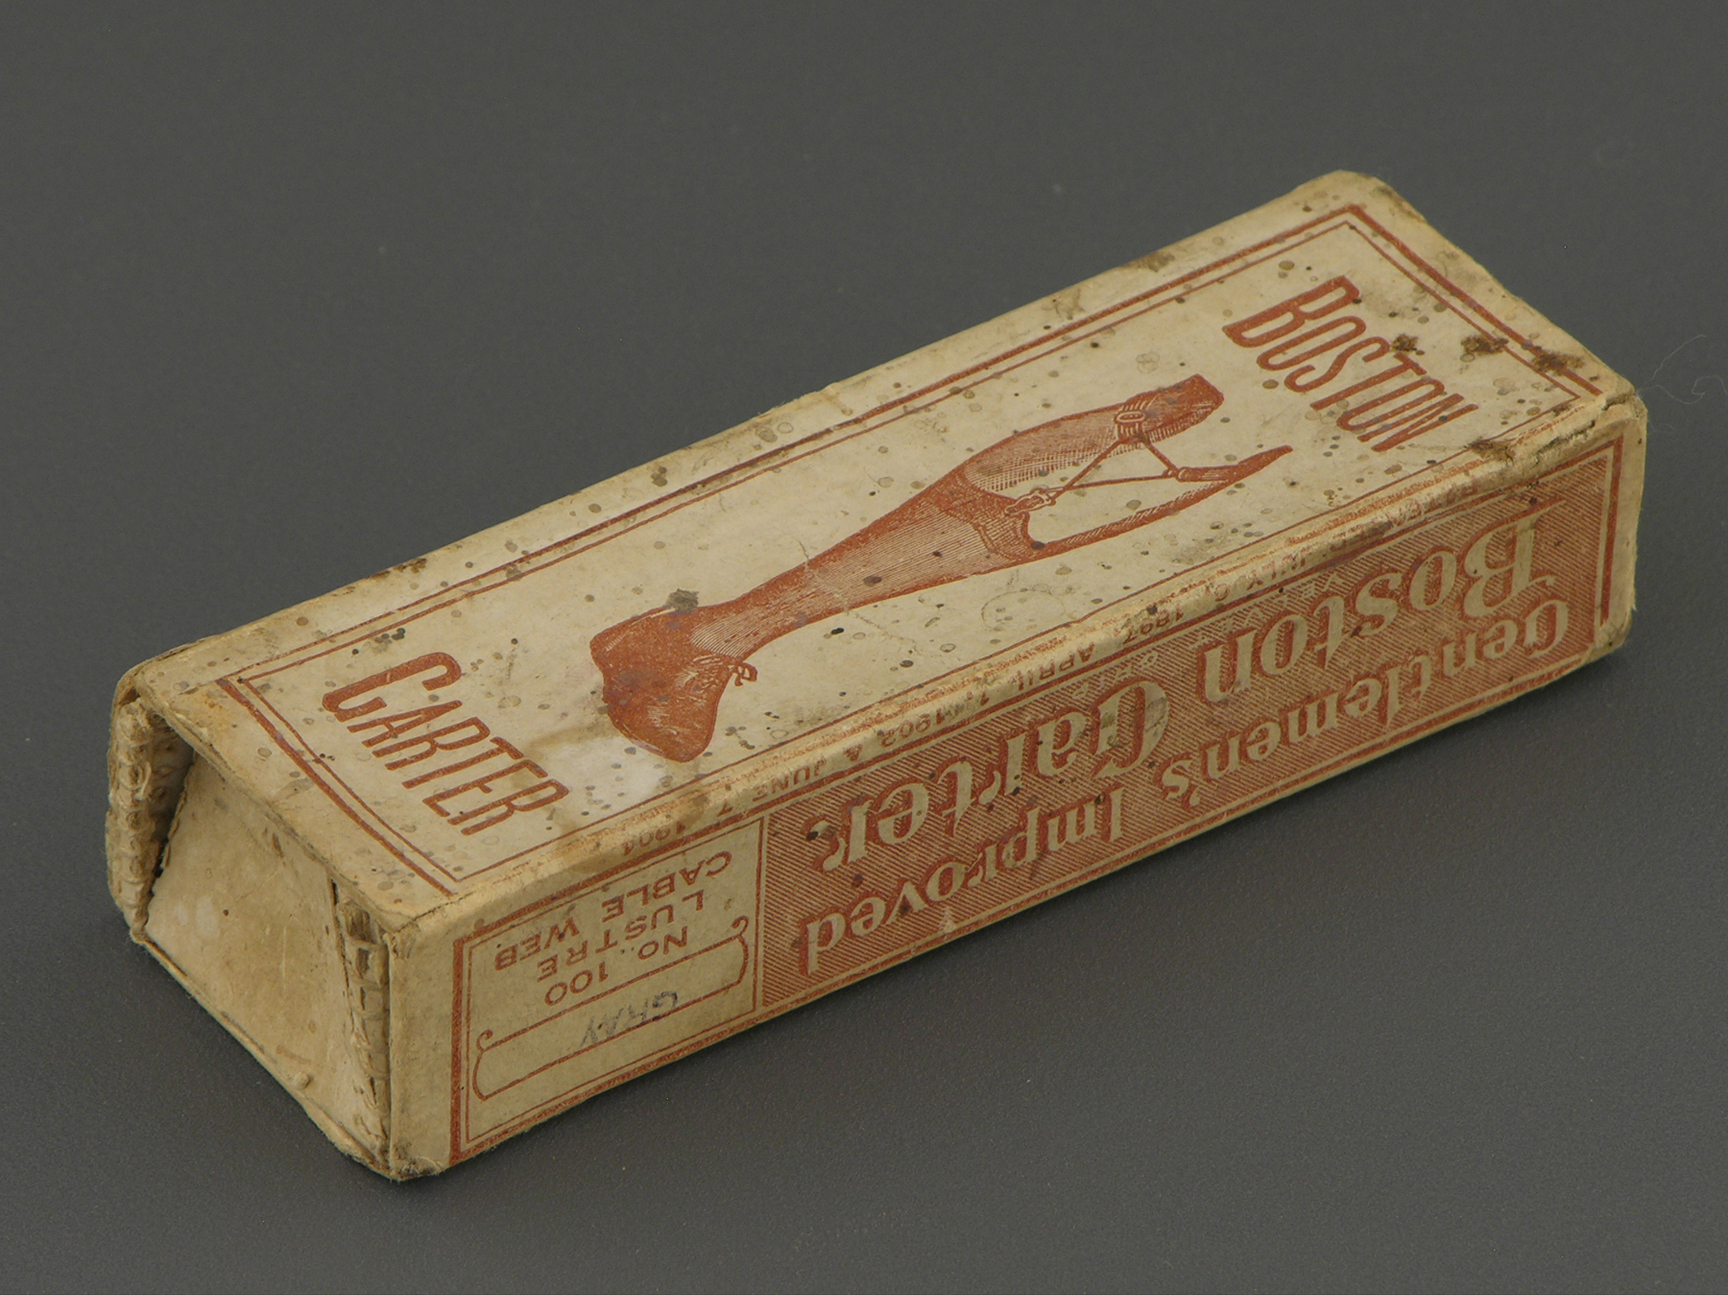 A box from the Boston sock garters with the marking of 1897, the museum EL MODO DEL MODO